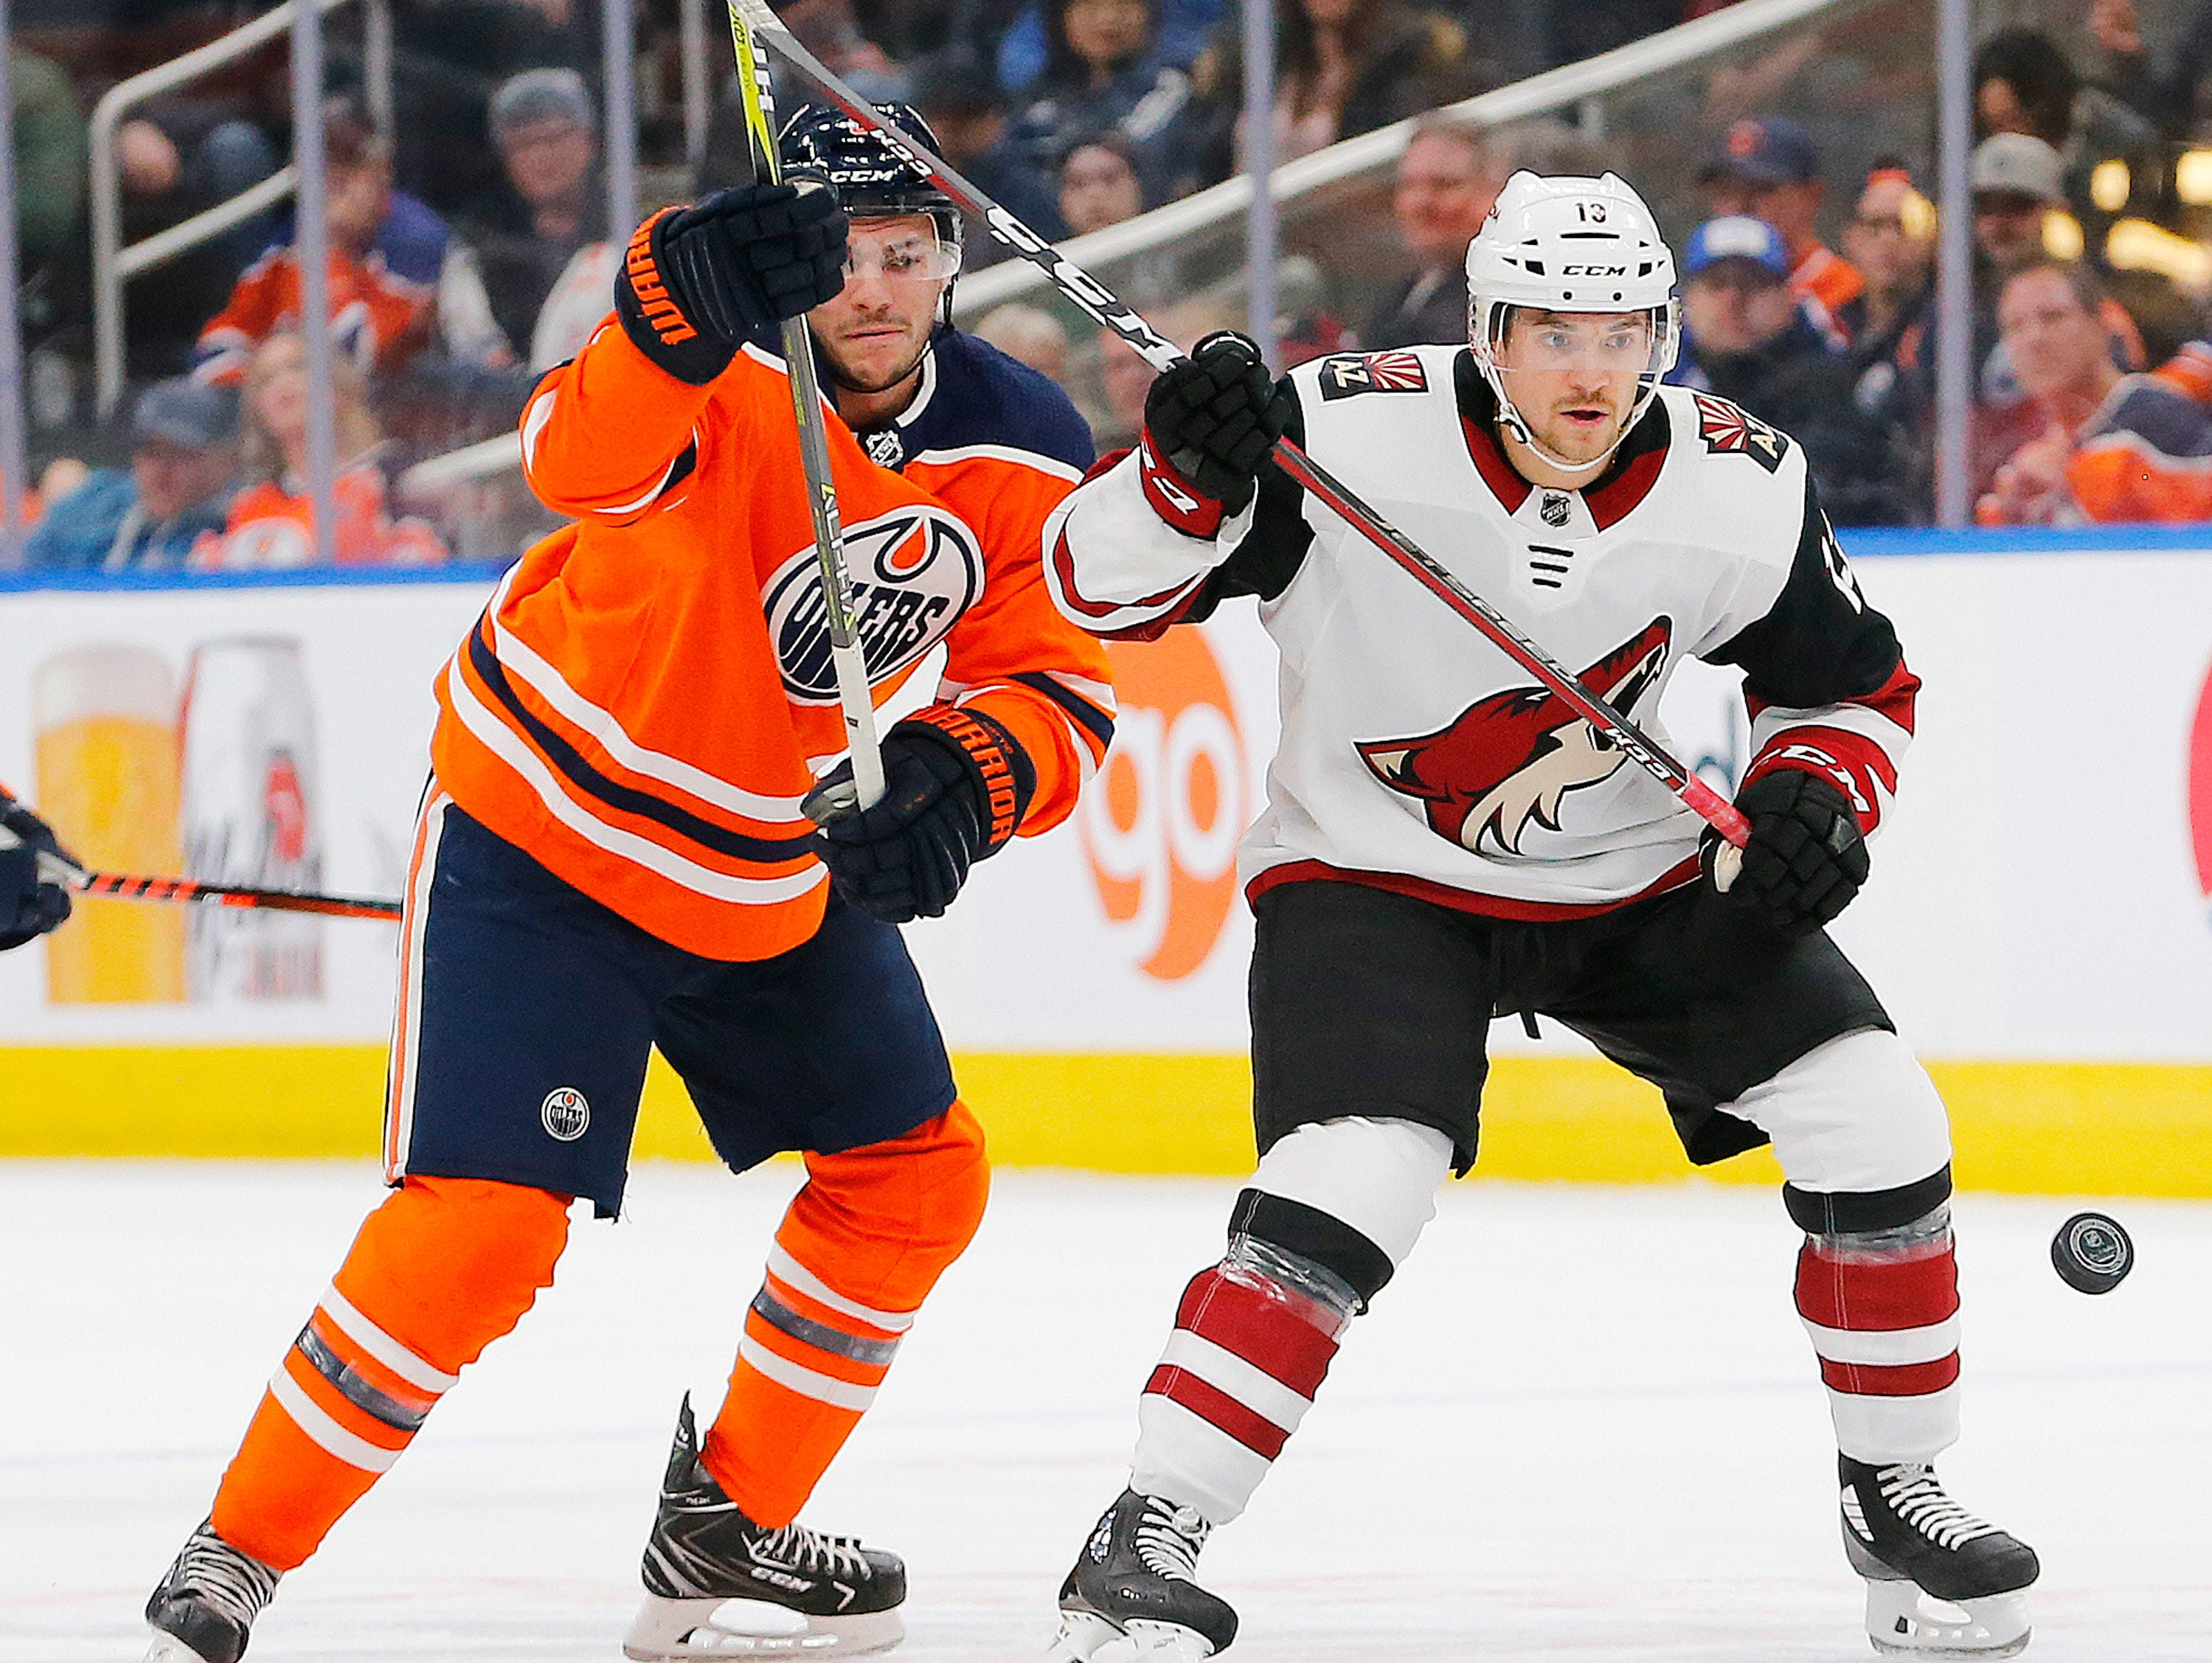 Feb 19, 2019; Edmonton, Alberta, CAN; Edmonton Oilers forward Ty Rattie (8) and Arizona Coyotes forward Vinnie Hinostroza (13) battle for a loose puck during the first period at Rogers Place. Mandatory Credit: Perry Nelson-USA TODAY Sports